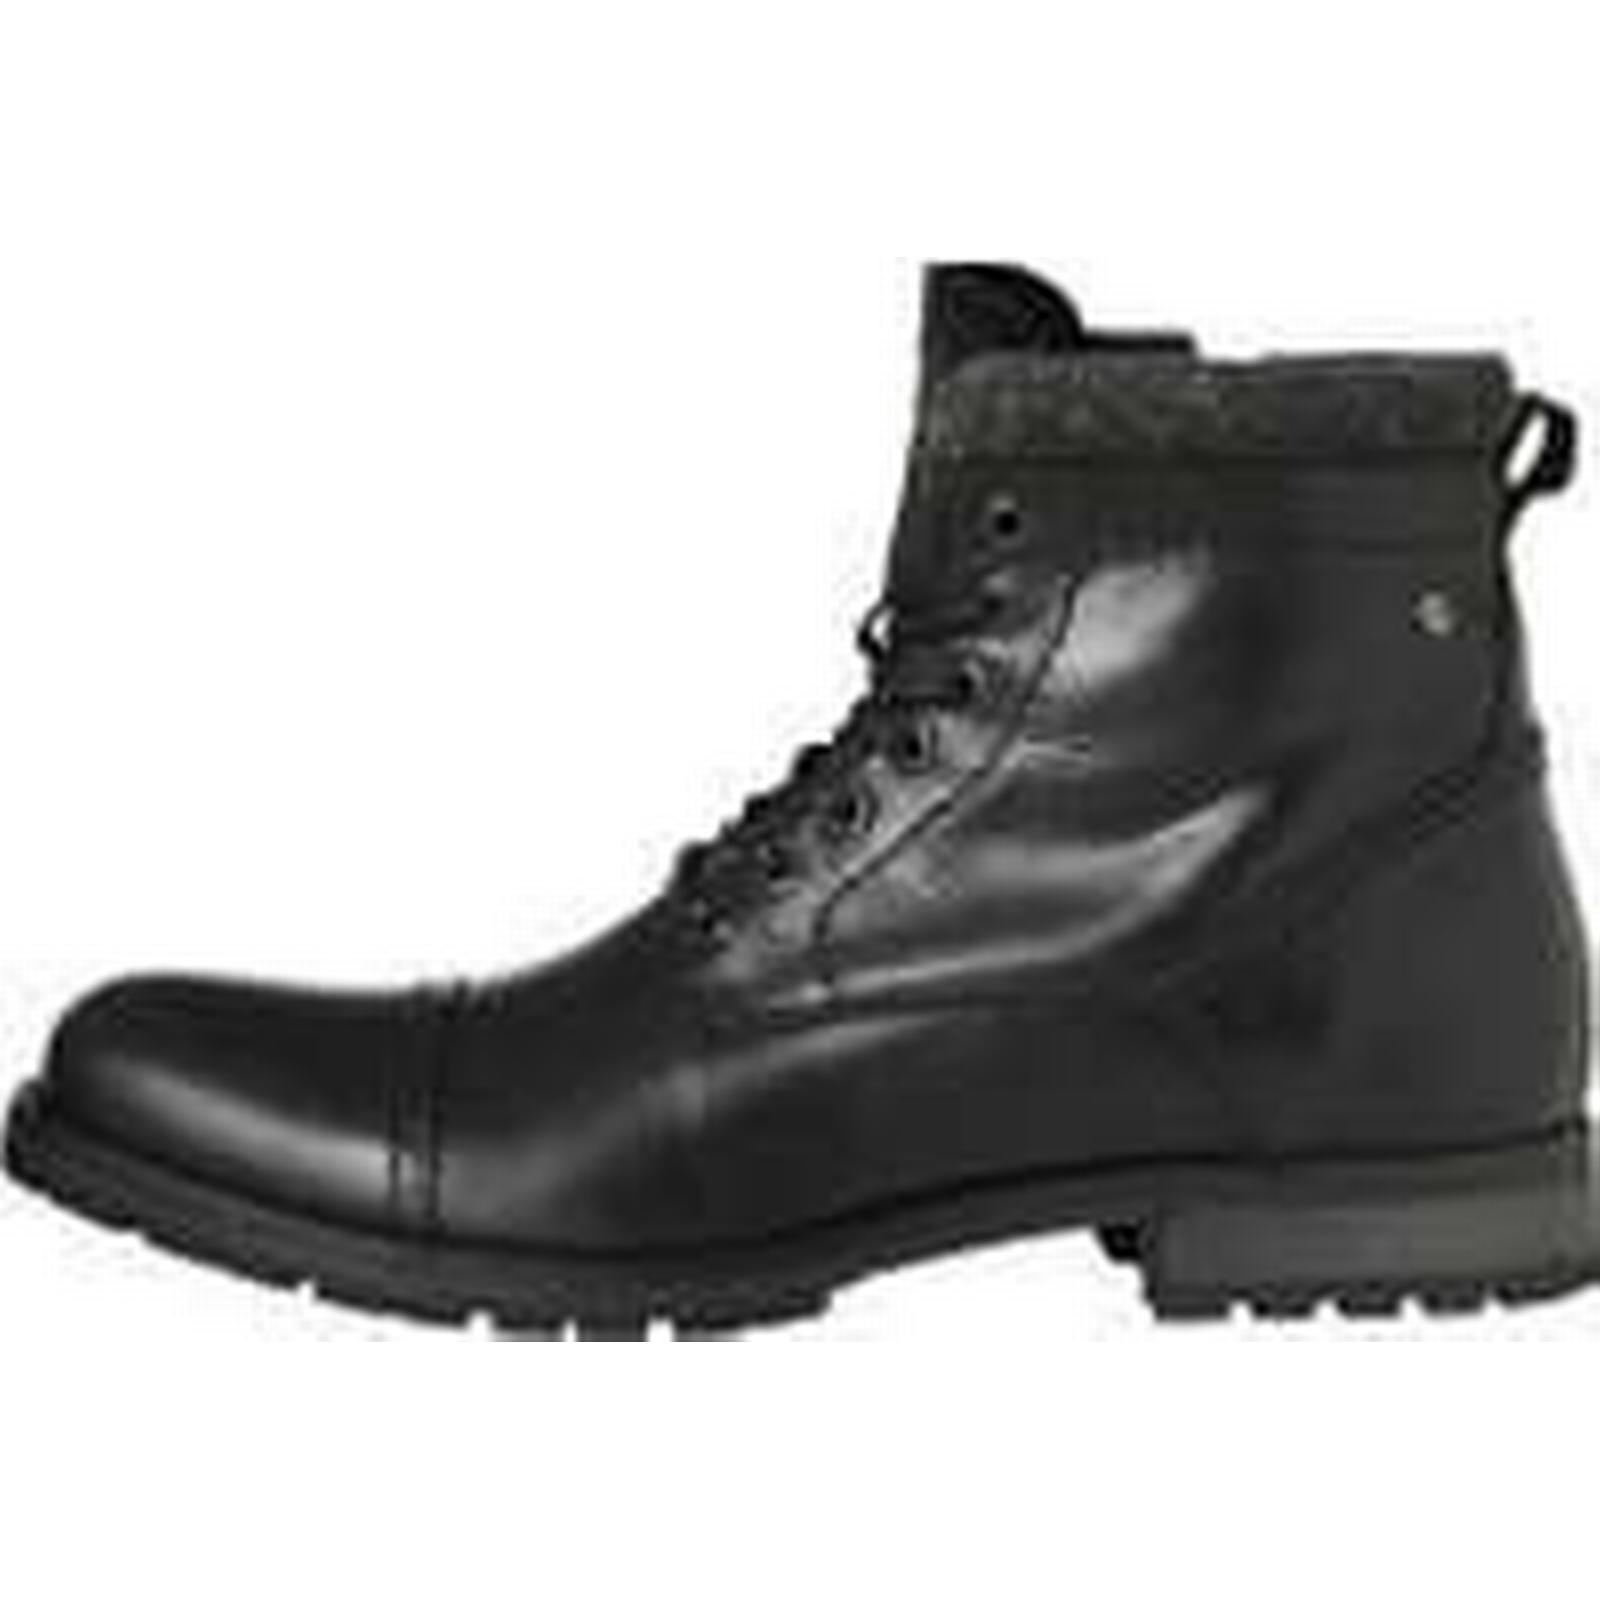 JACK & JONES (45) Leather Boots Men Black (45) JONES b4f23b